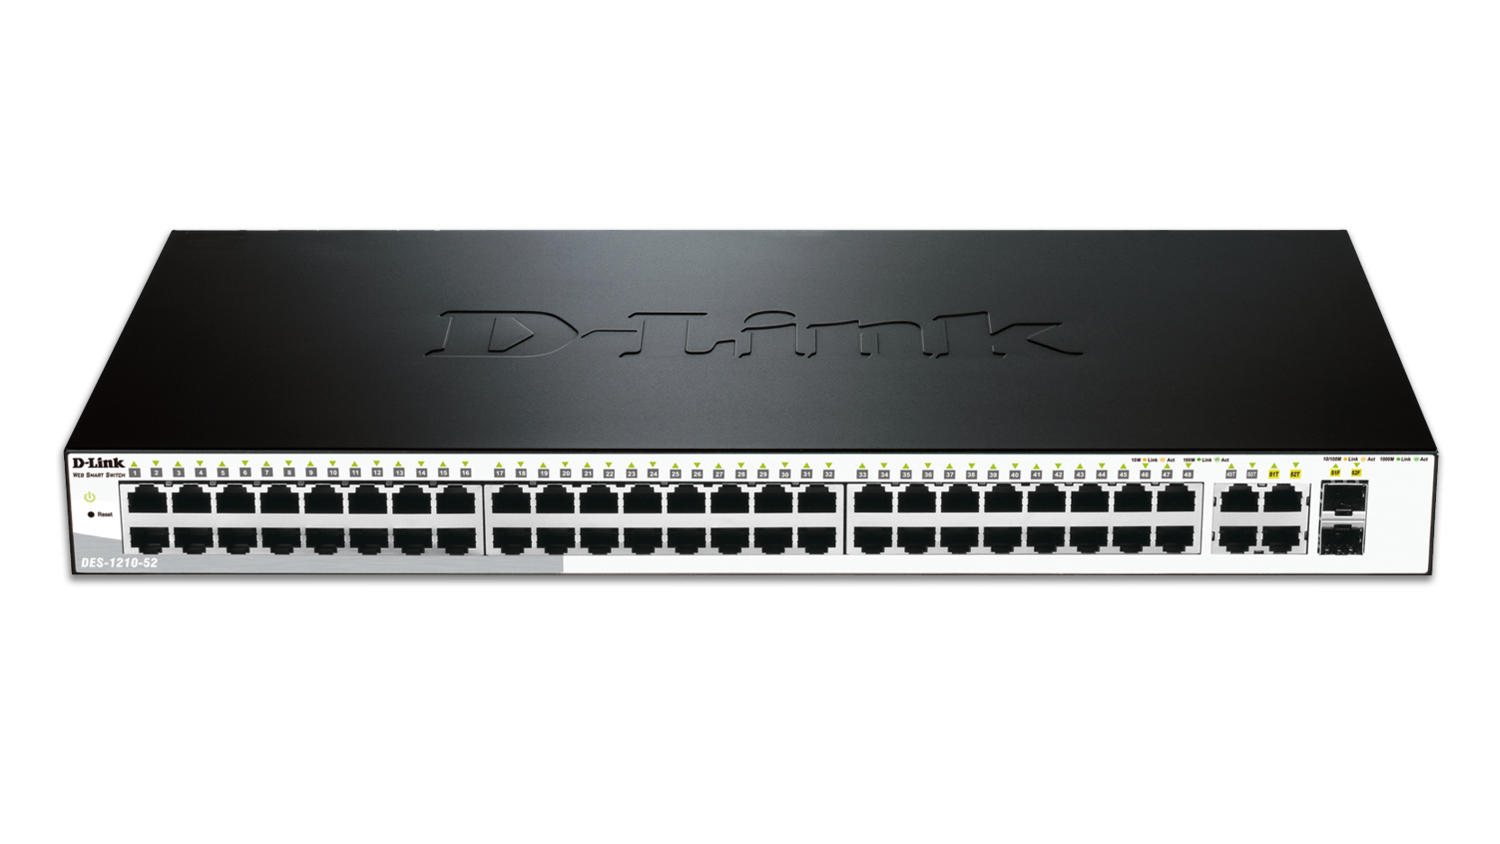 D-Link 48-Ports 10/100/1000Mbps Smart Switches, DES-1210-52